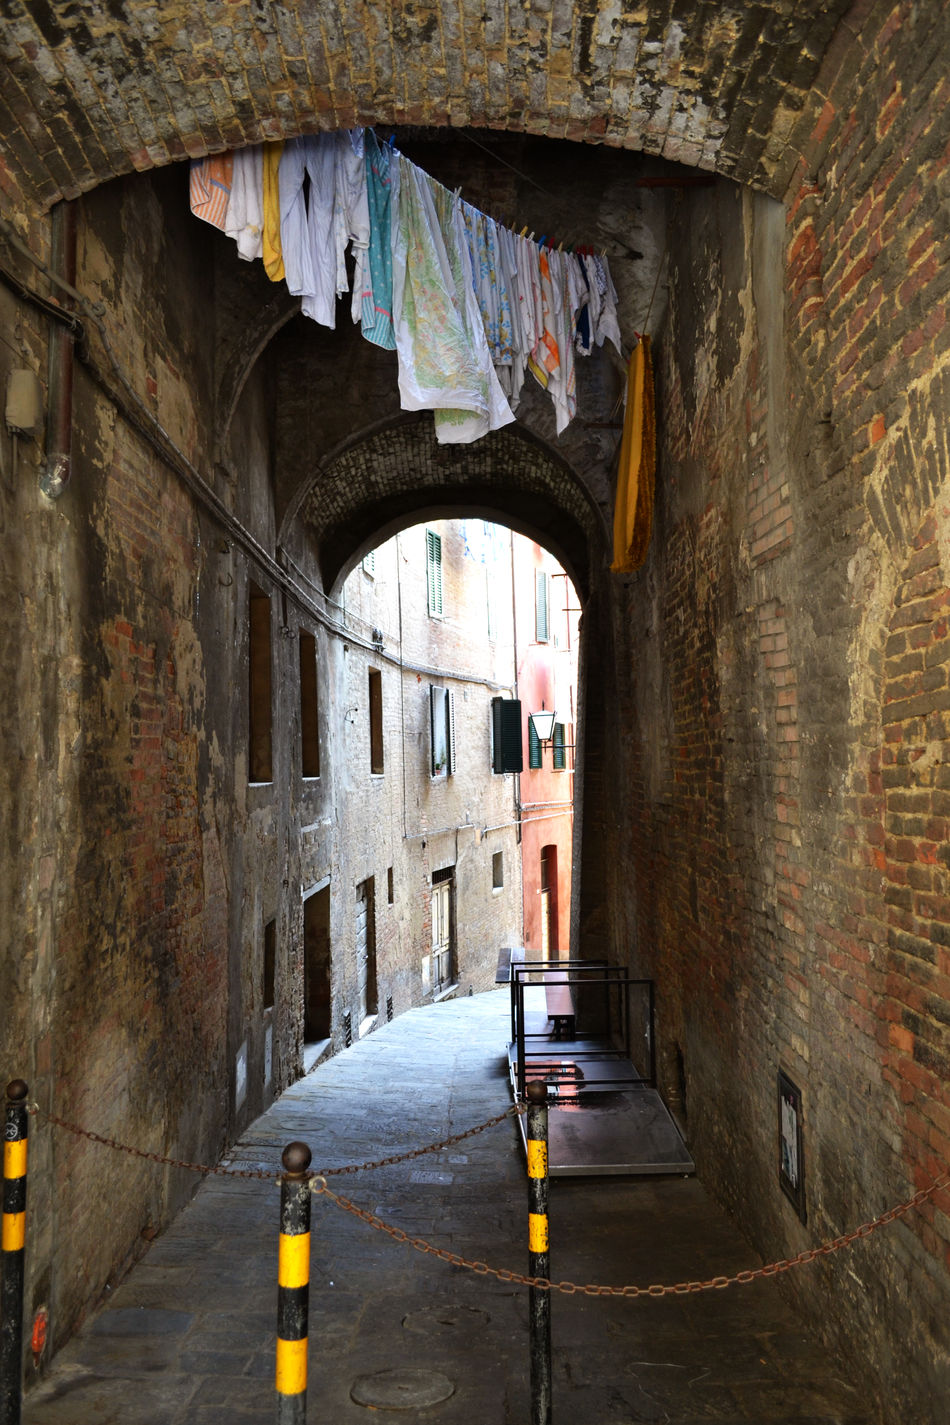 Architecture Building Ceiling City Life Clothes Corridor Culture Entrance EyeEm Best Shots My Best Photo 2015 Old Streetphotography Streets Travel Photography Urban Wall Everybody Street City View  Traveling City Life Greetings From Italy Telling Stories Differently The Architect - 2016 EyeEm Awards